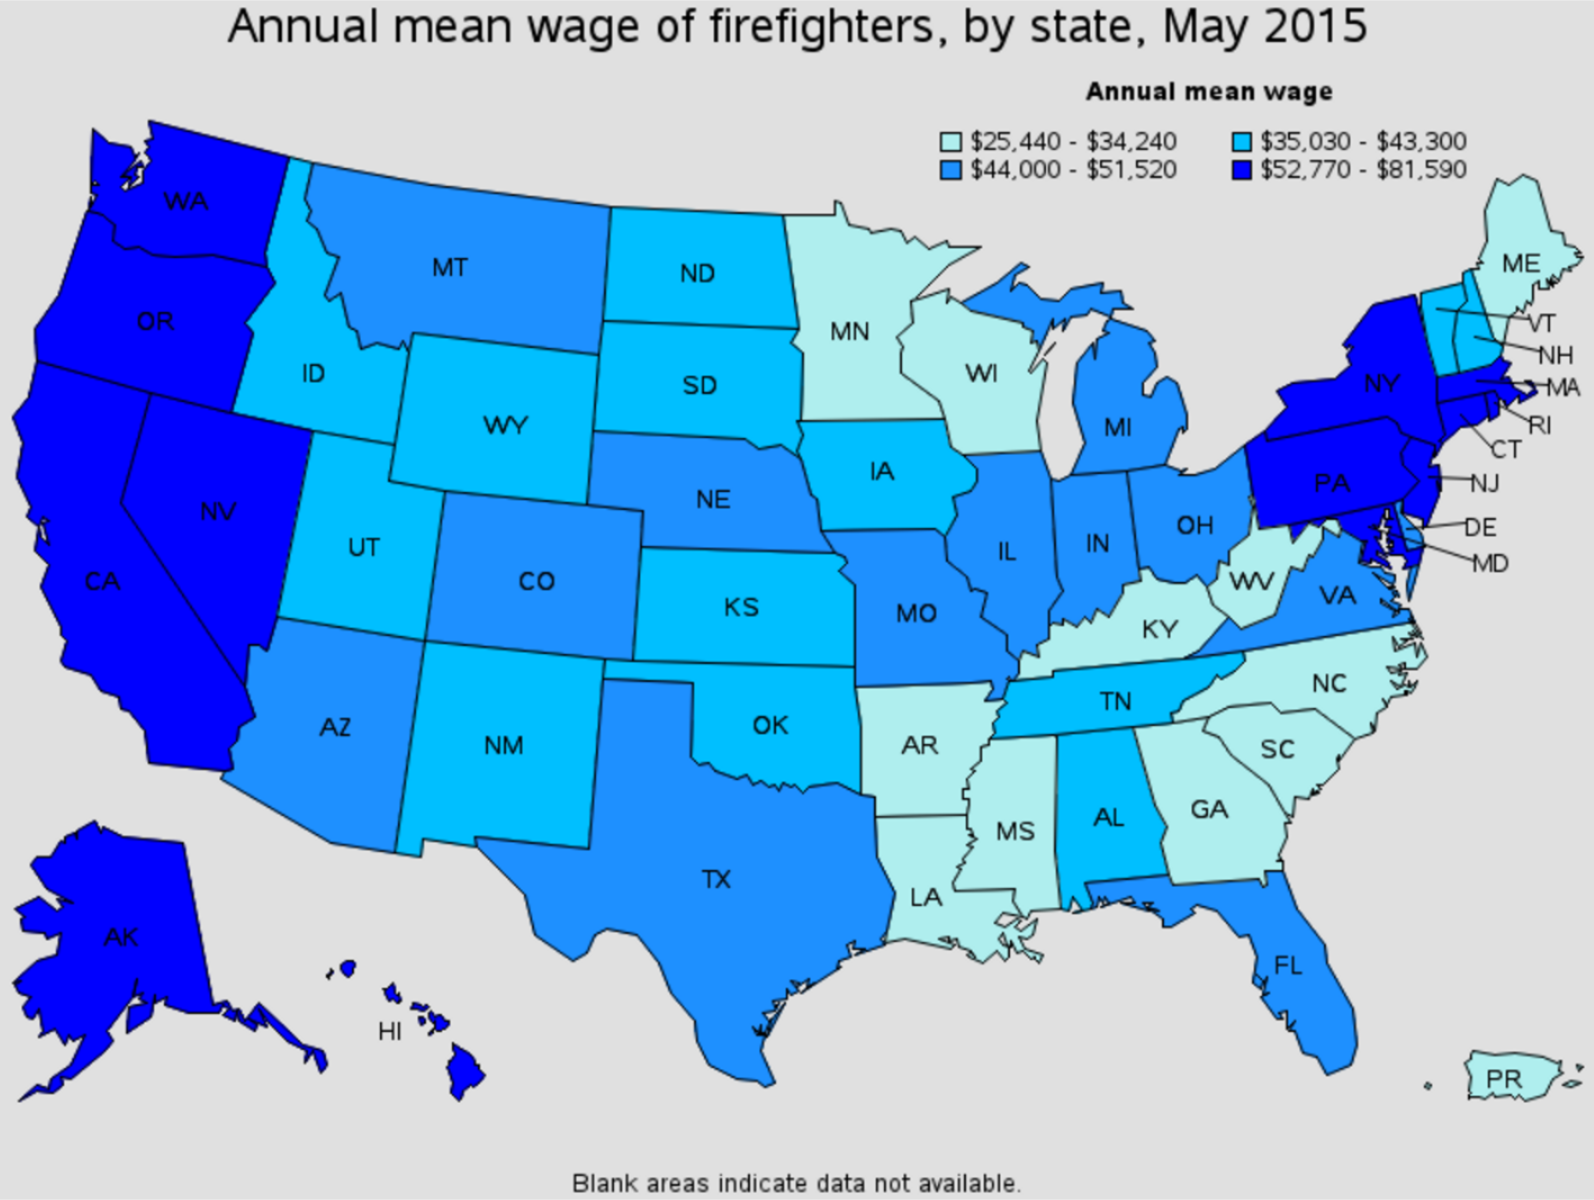 firefighter average salary by state Walterboro South Carolina